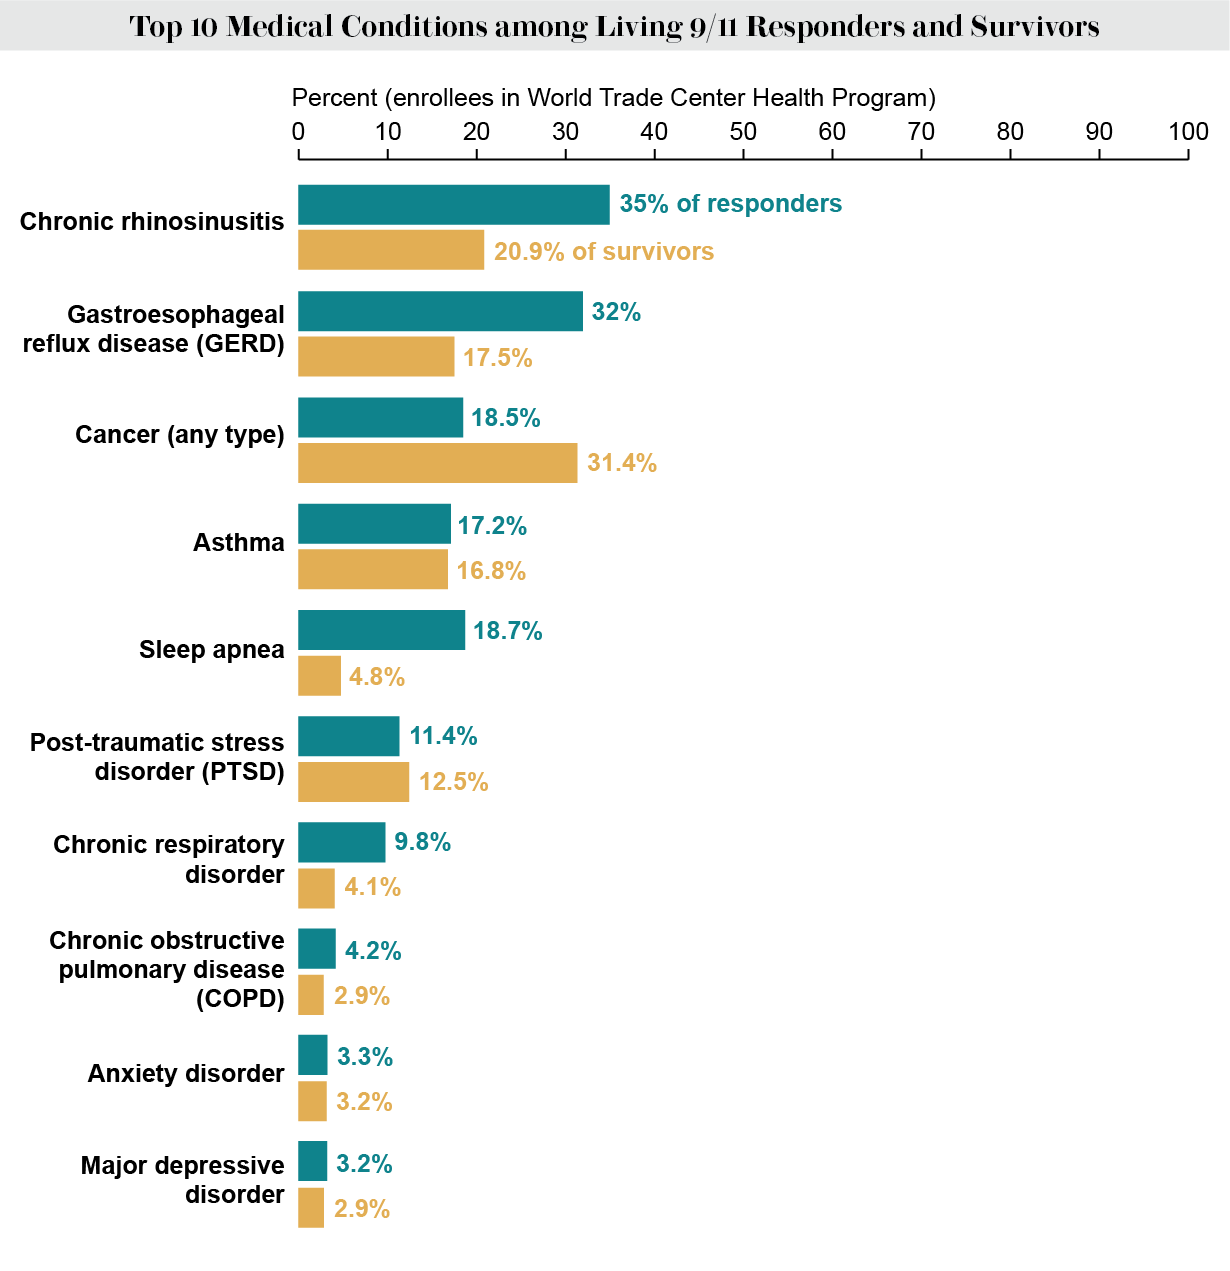 Graphic lists top 10 medical conditions among living 9/11 responders and survivors and shows their prevalence in each group.